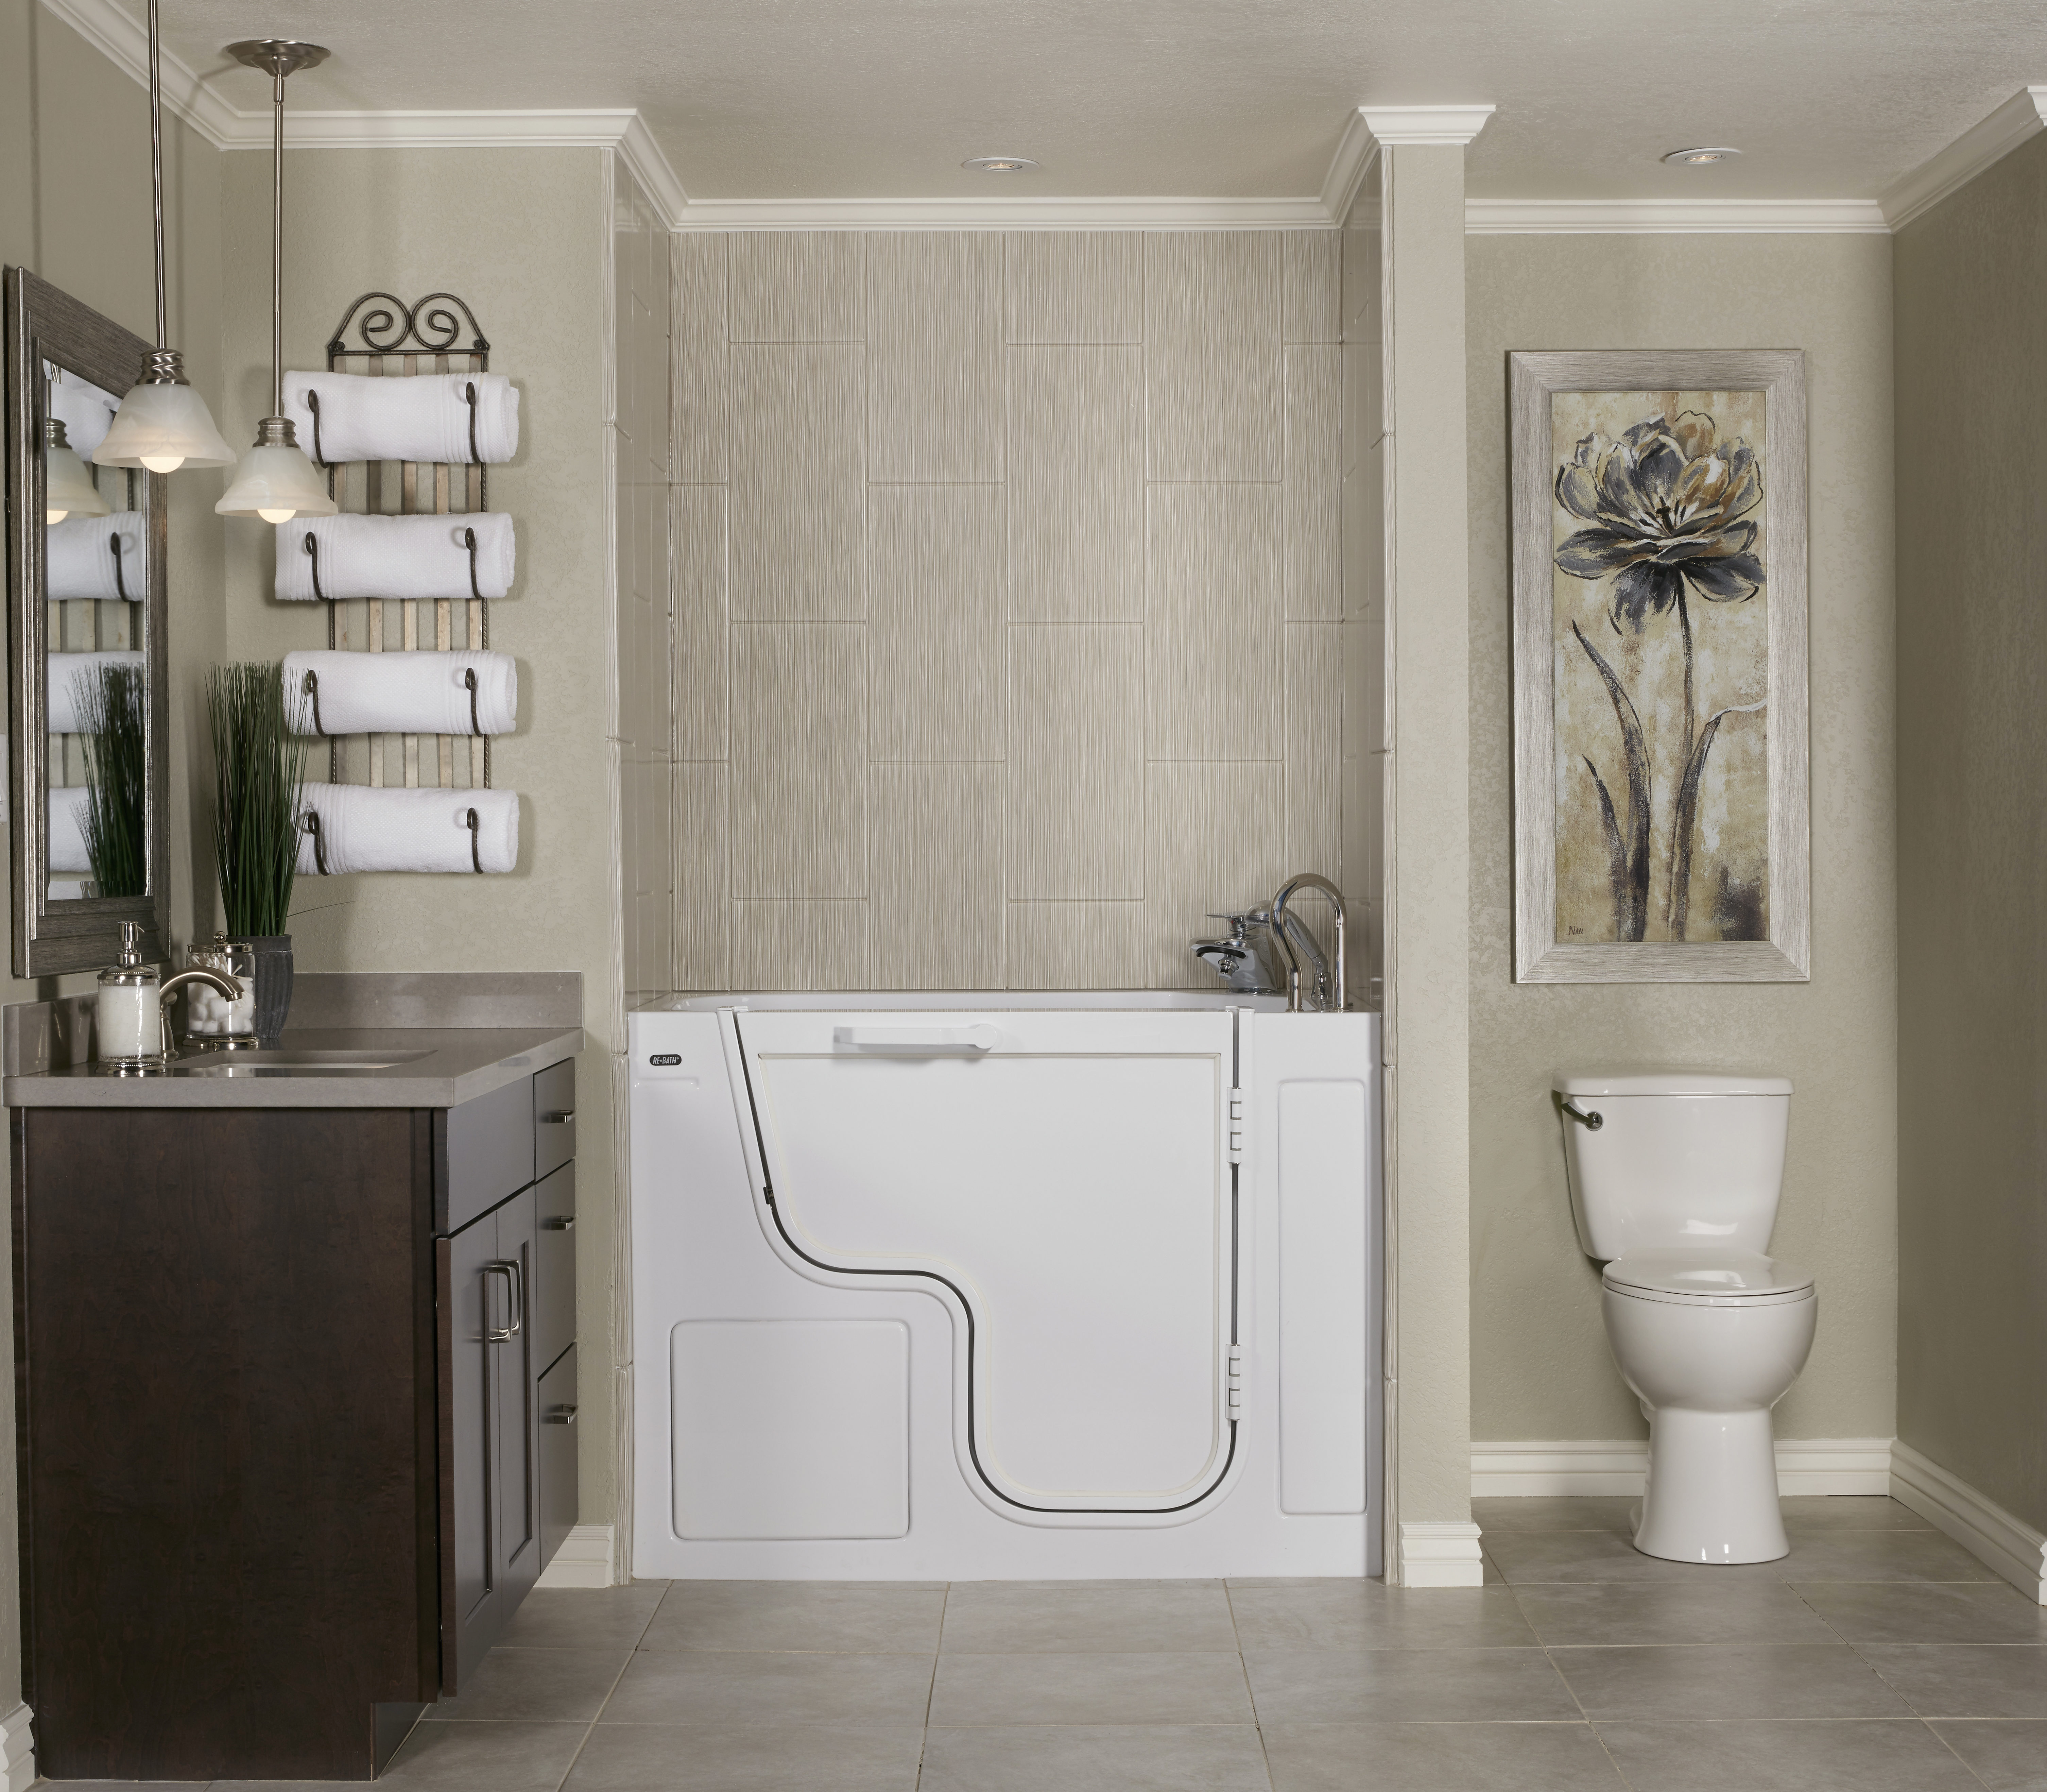 Wonderful Images For Small Bathroom Designs Small Bathroom Tempered Glass Vessel Sink Vanity Faucet Flat Long Island Custom Bathroom Cabinets Bathroom Cabinets For Vessel Sinks Youthful Bathroom Faucet Removal Purple3 Mirror Bathroom Vanity Top 558 Reviews And Complaints About Re Bath